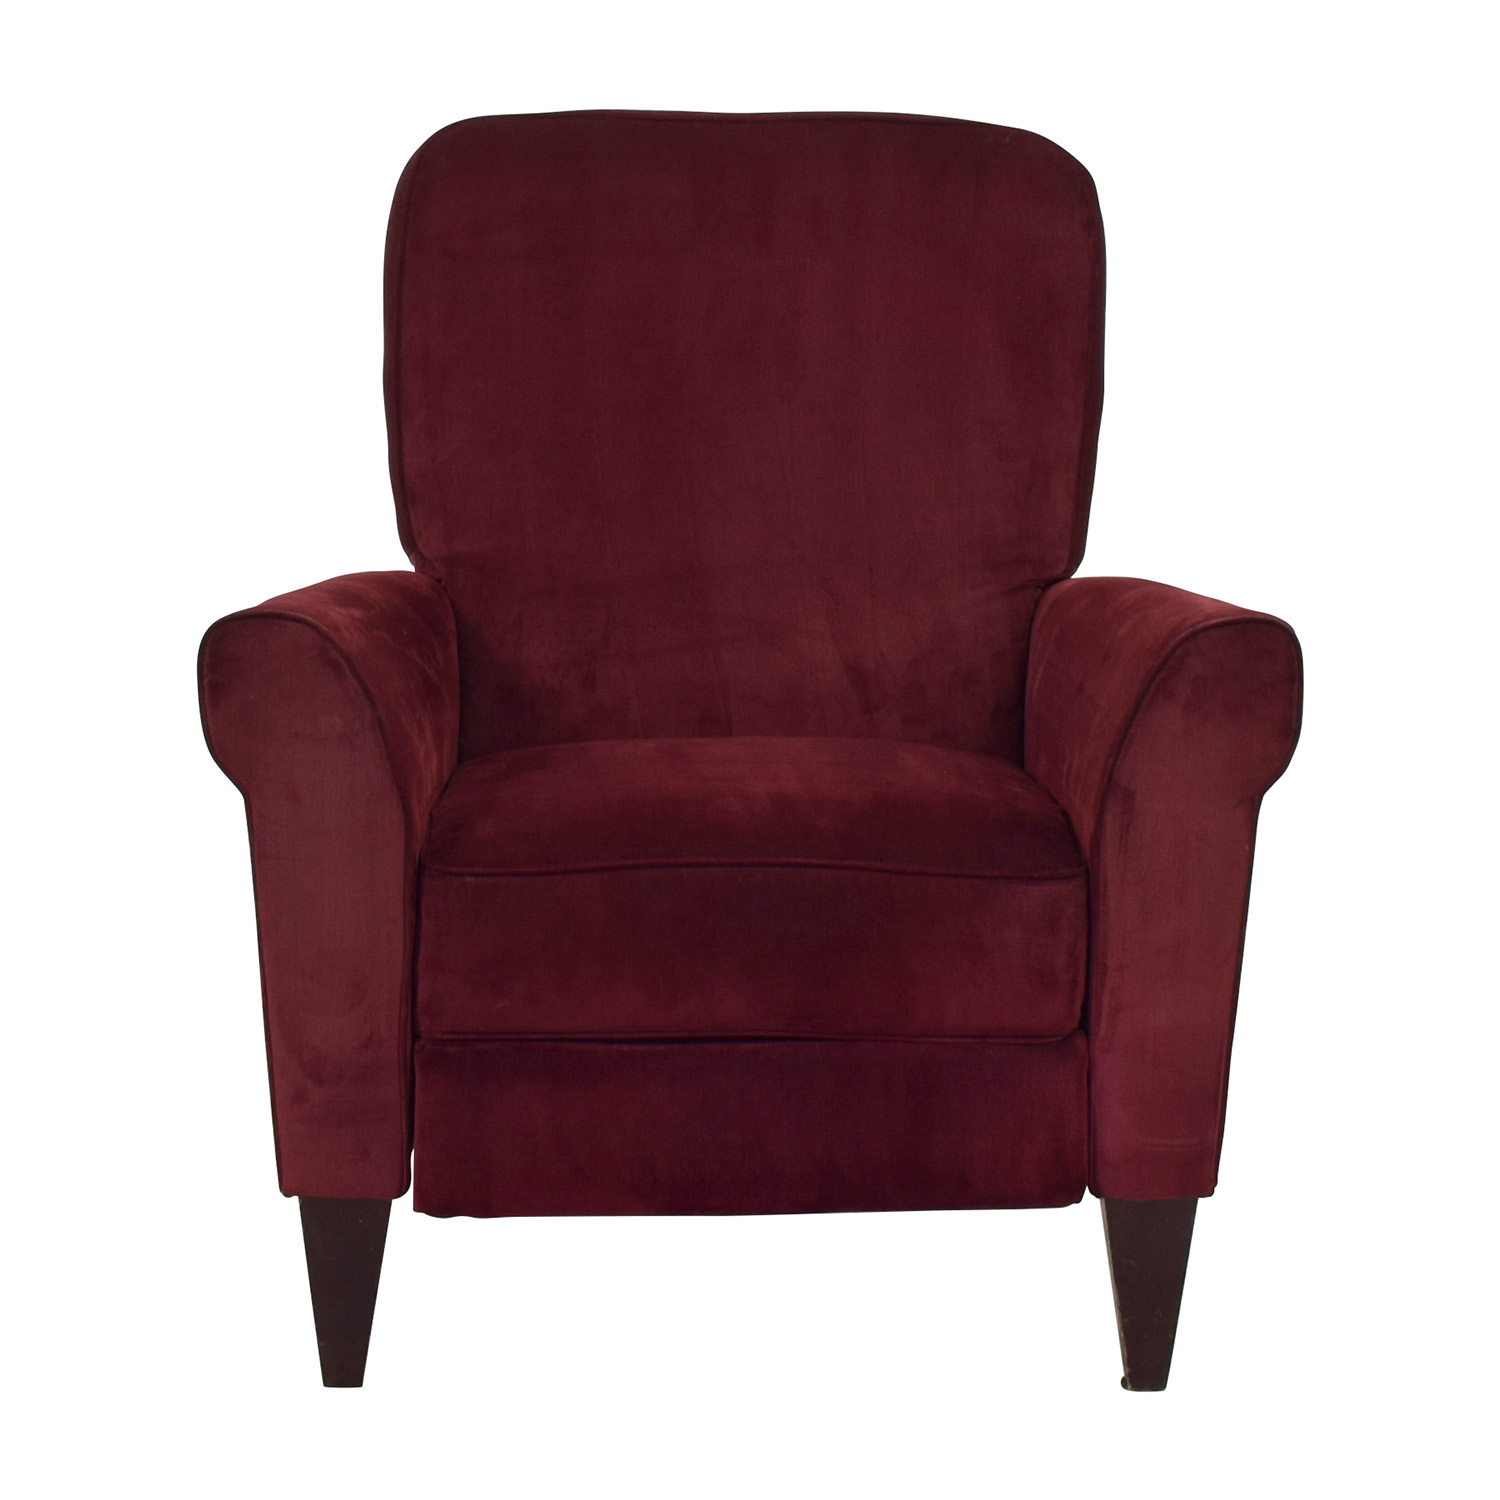 La-Z-Boy La-Z-Boy High Leg Recliner Chair on sale